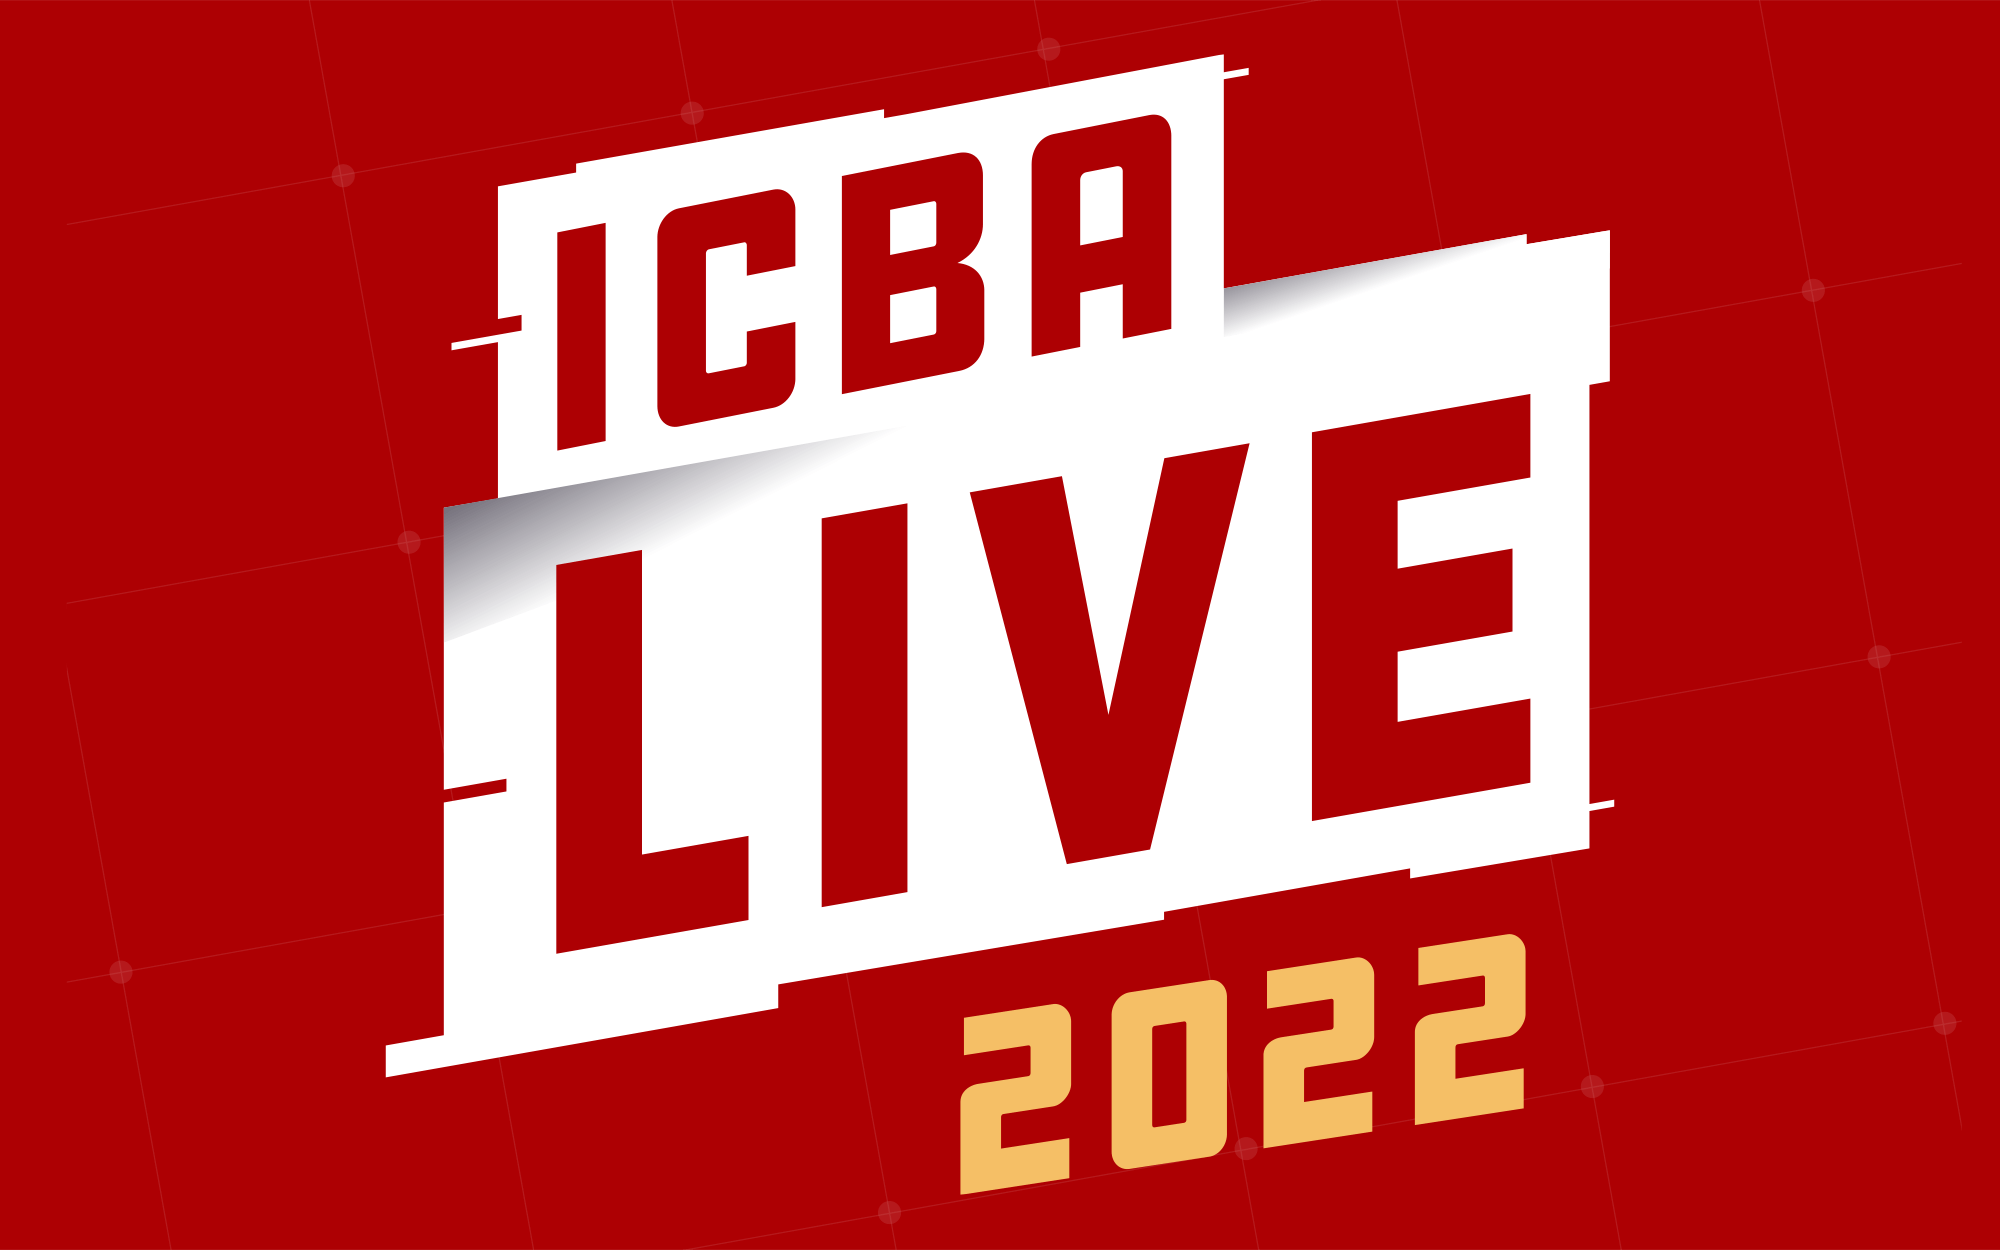 ICBA Live 2022 Red